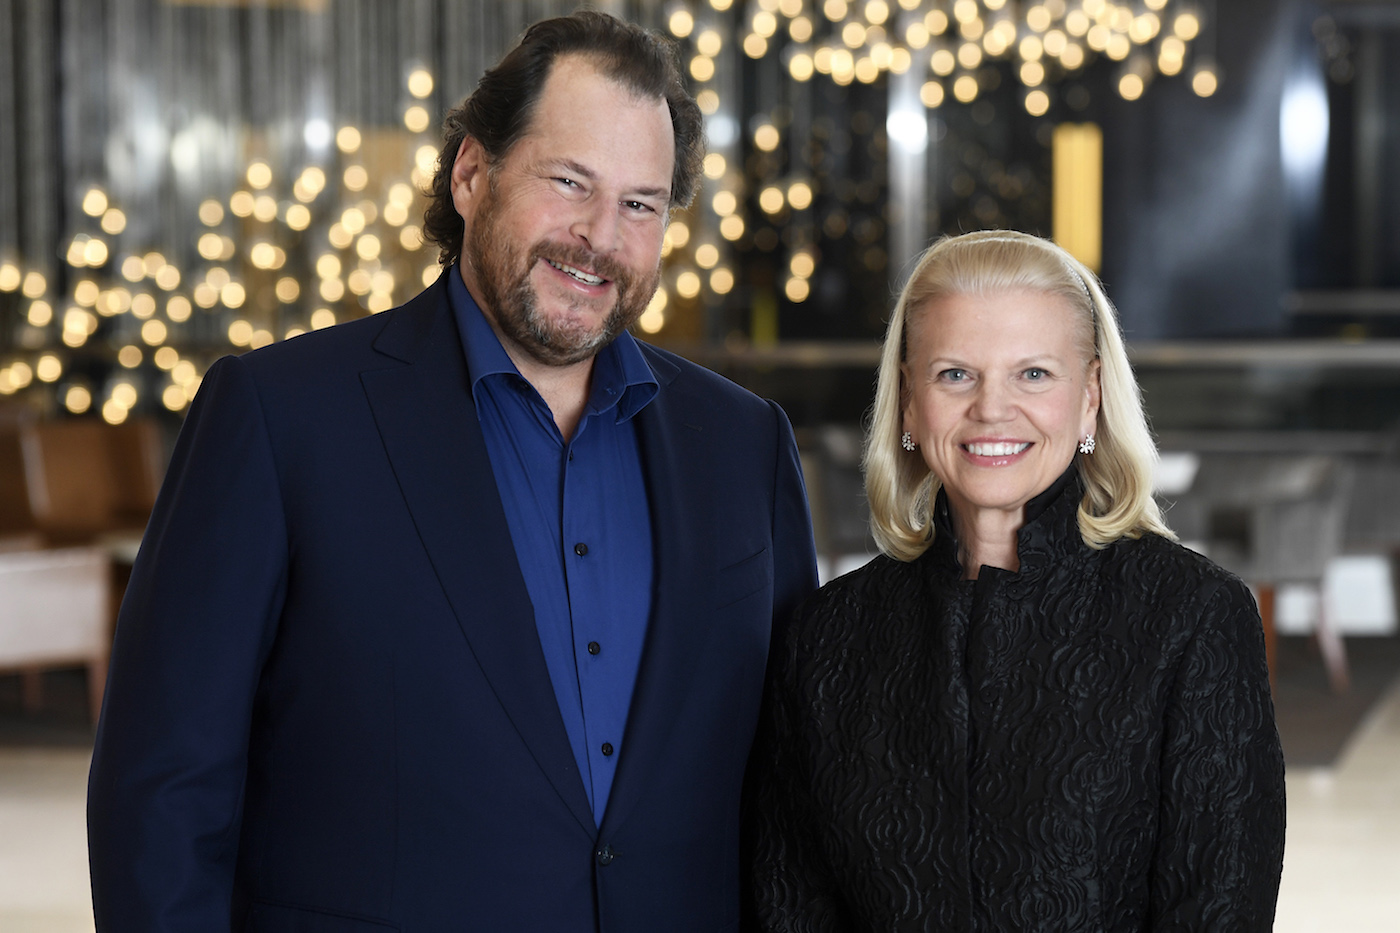 Salesforce e IBM anunciam parceria estratégica global